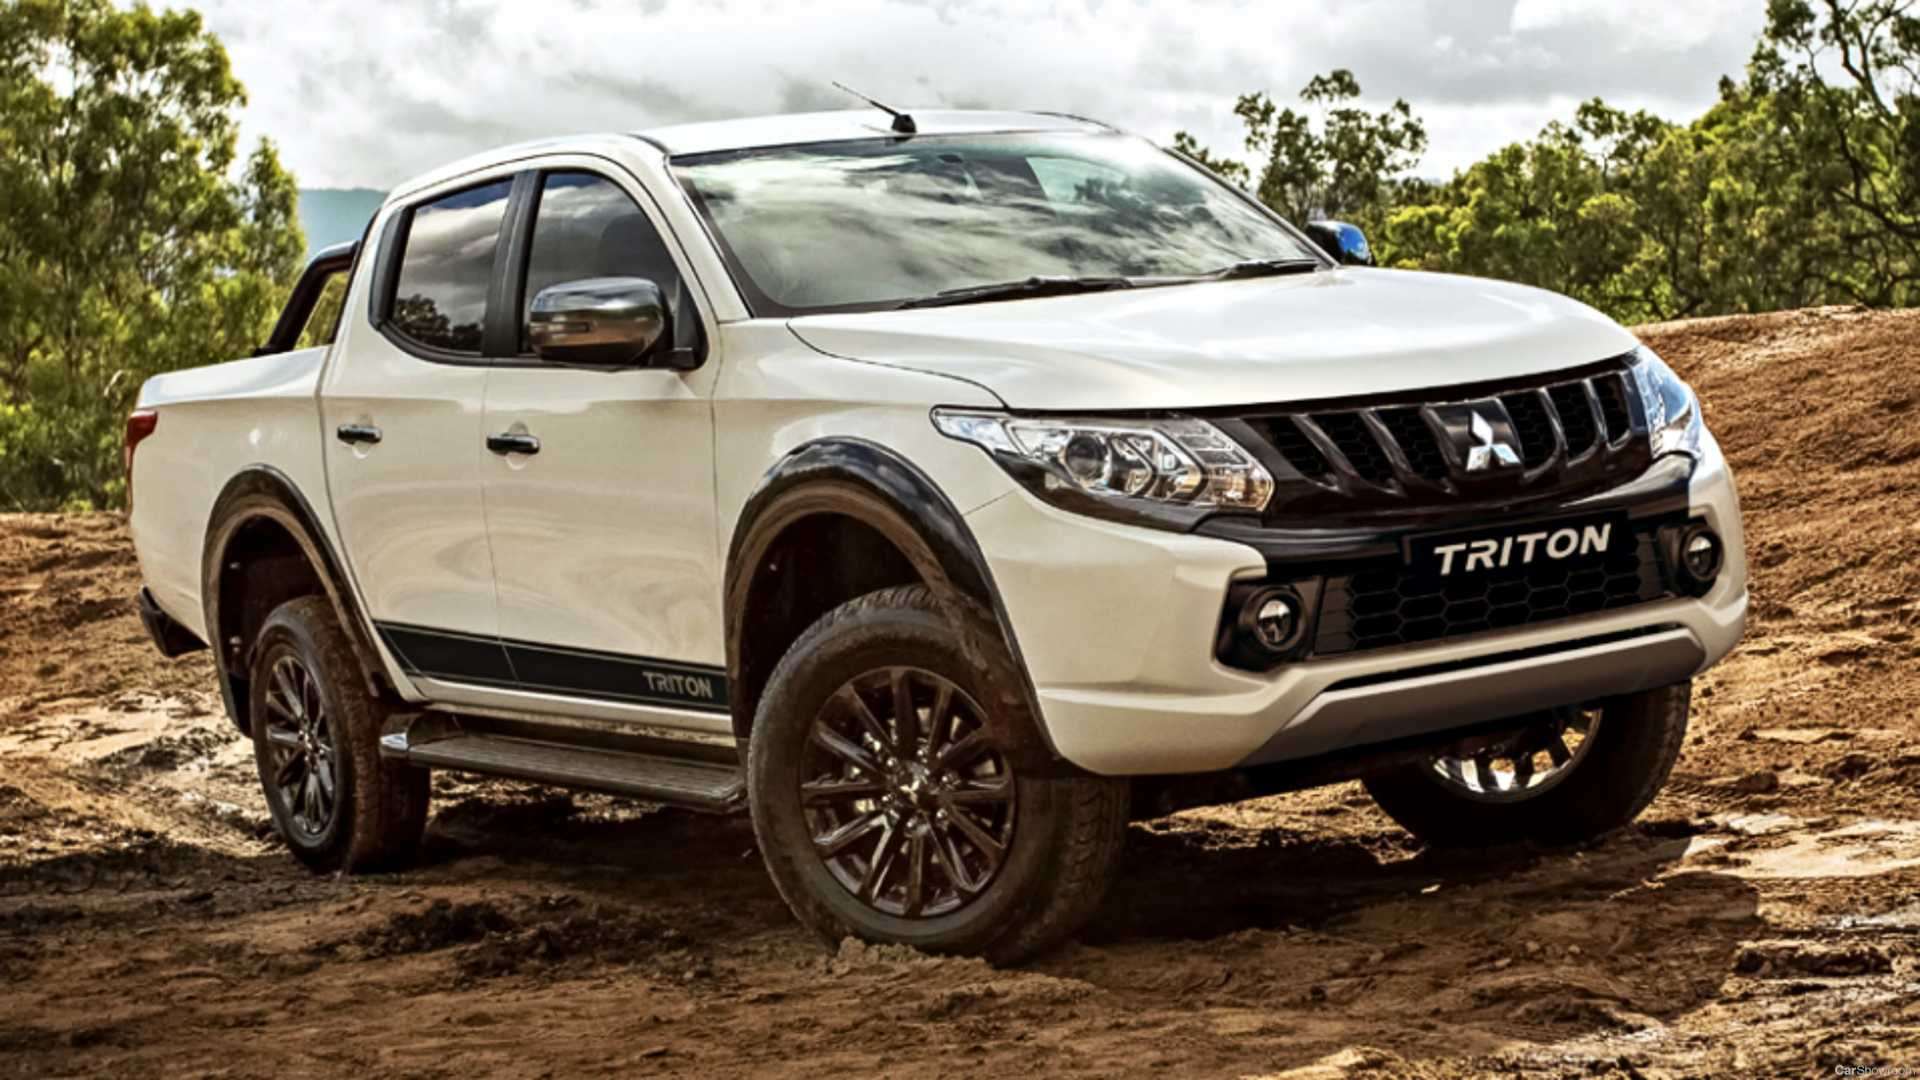 The so-called Mitsubishi Triton Blackline Limited Edition will be offered for what amounts to U.S. $43,490